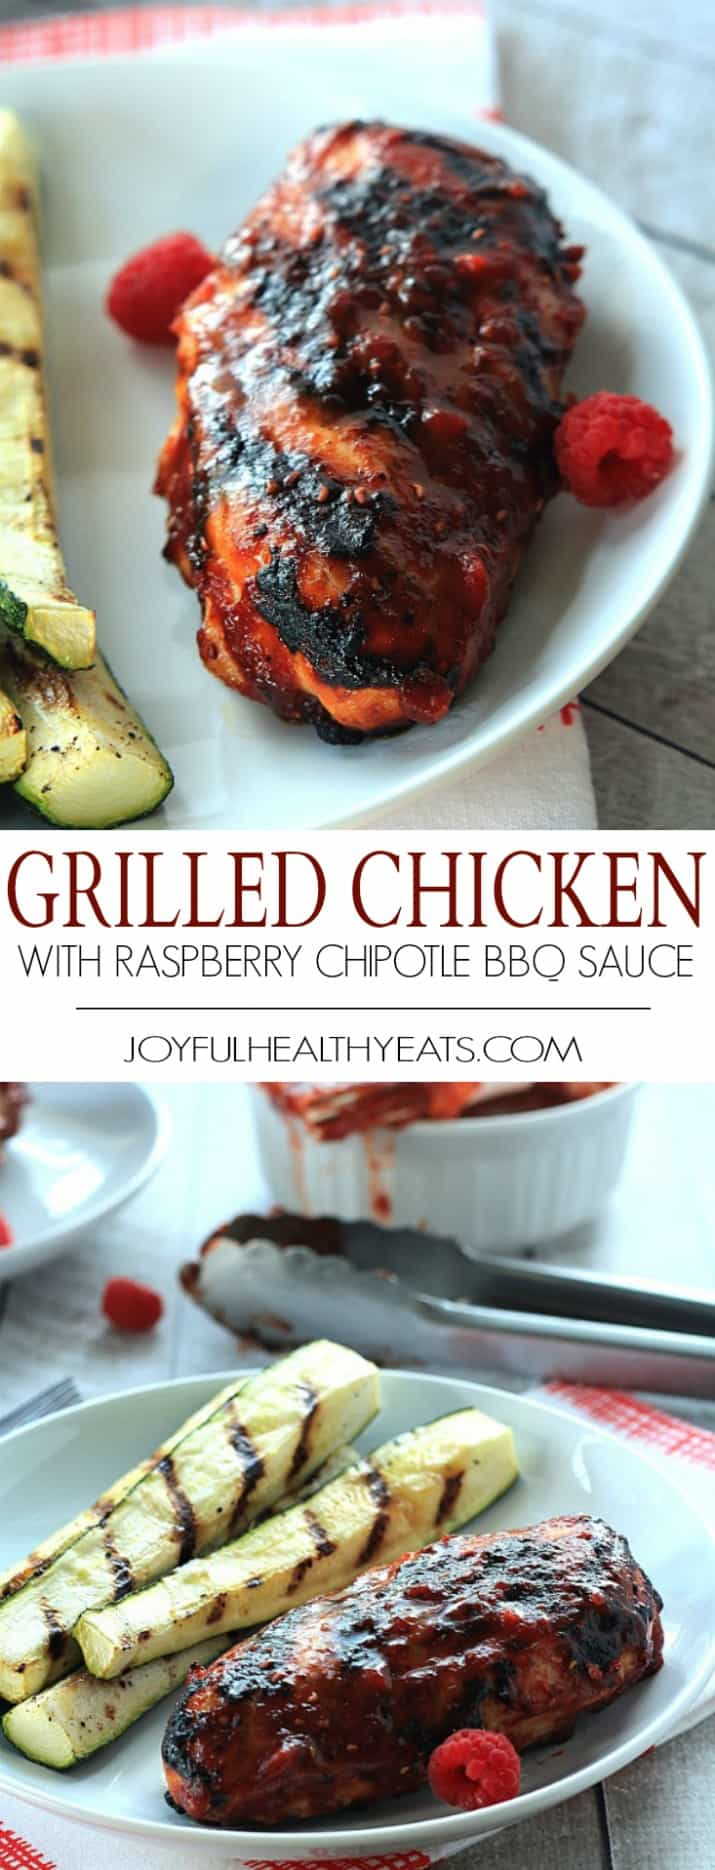 Absolutely agree Chicken breast with bbq sauce talented idea